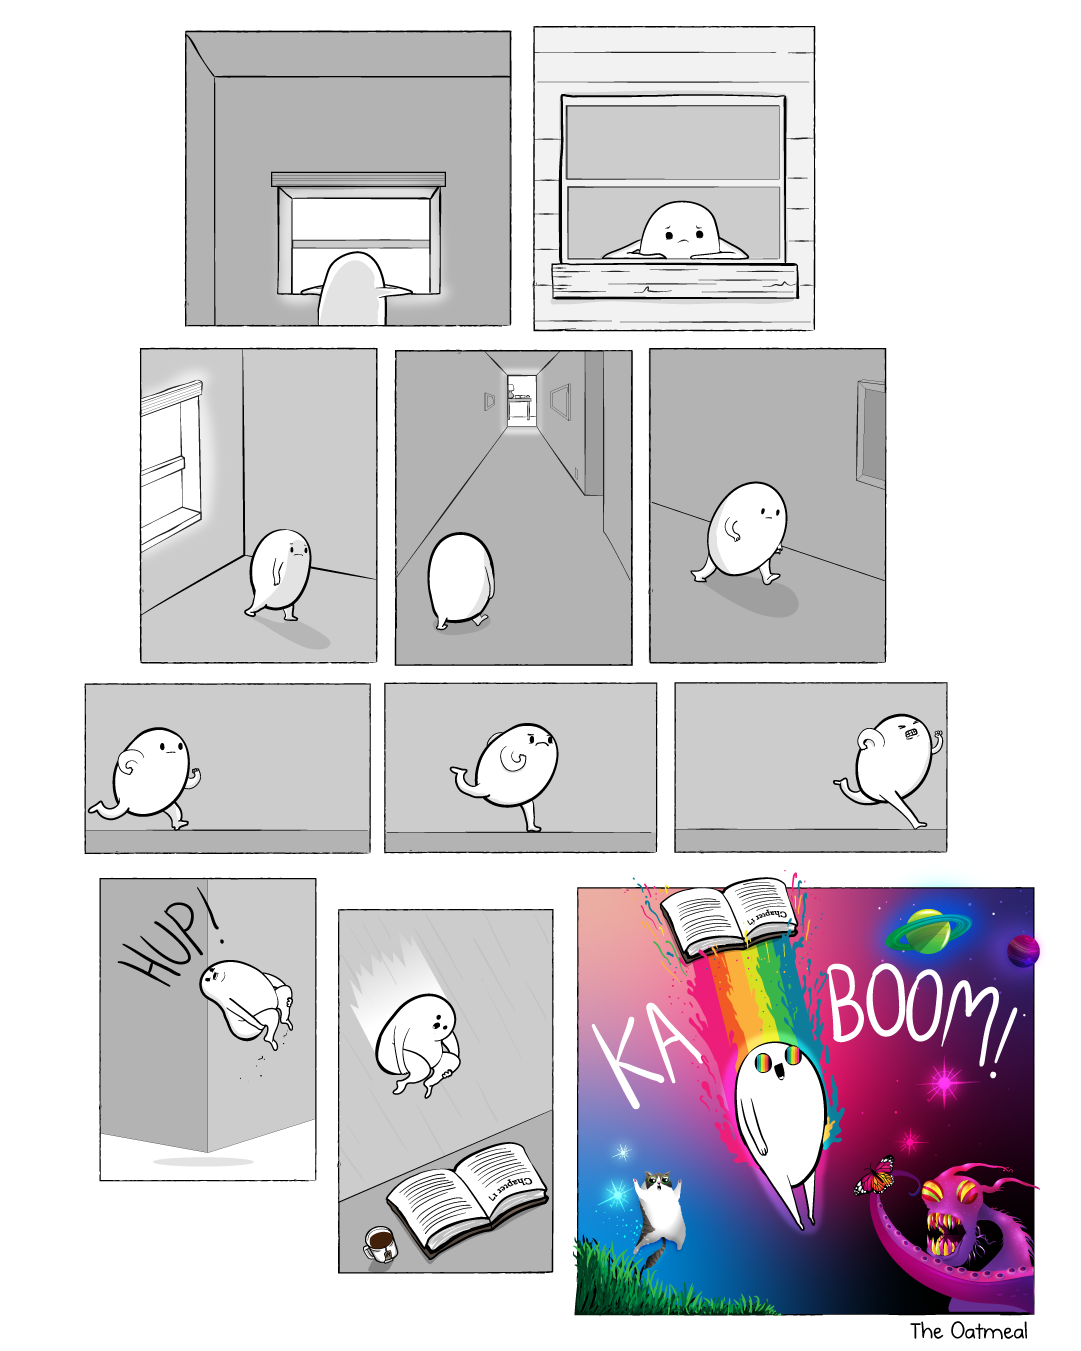 A comic about books